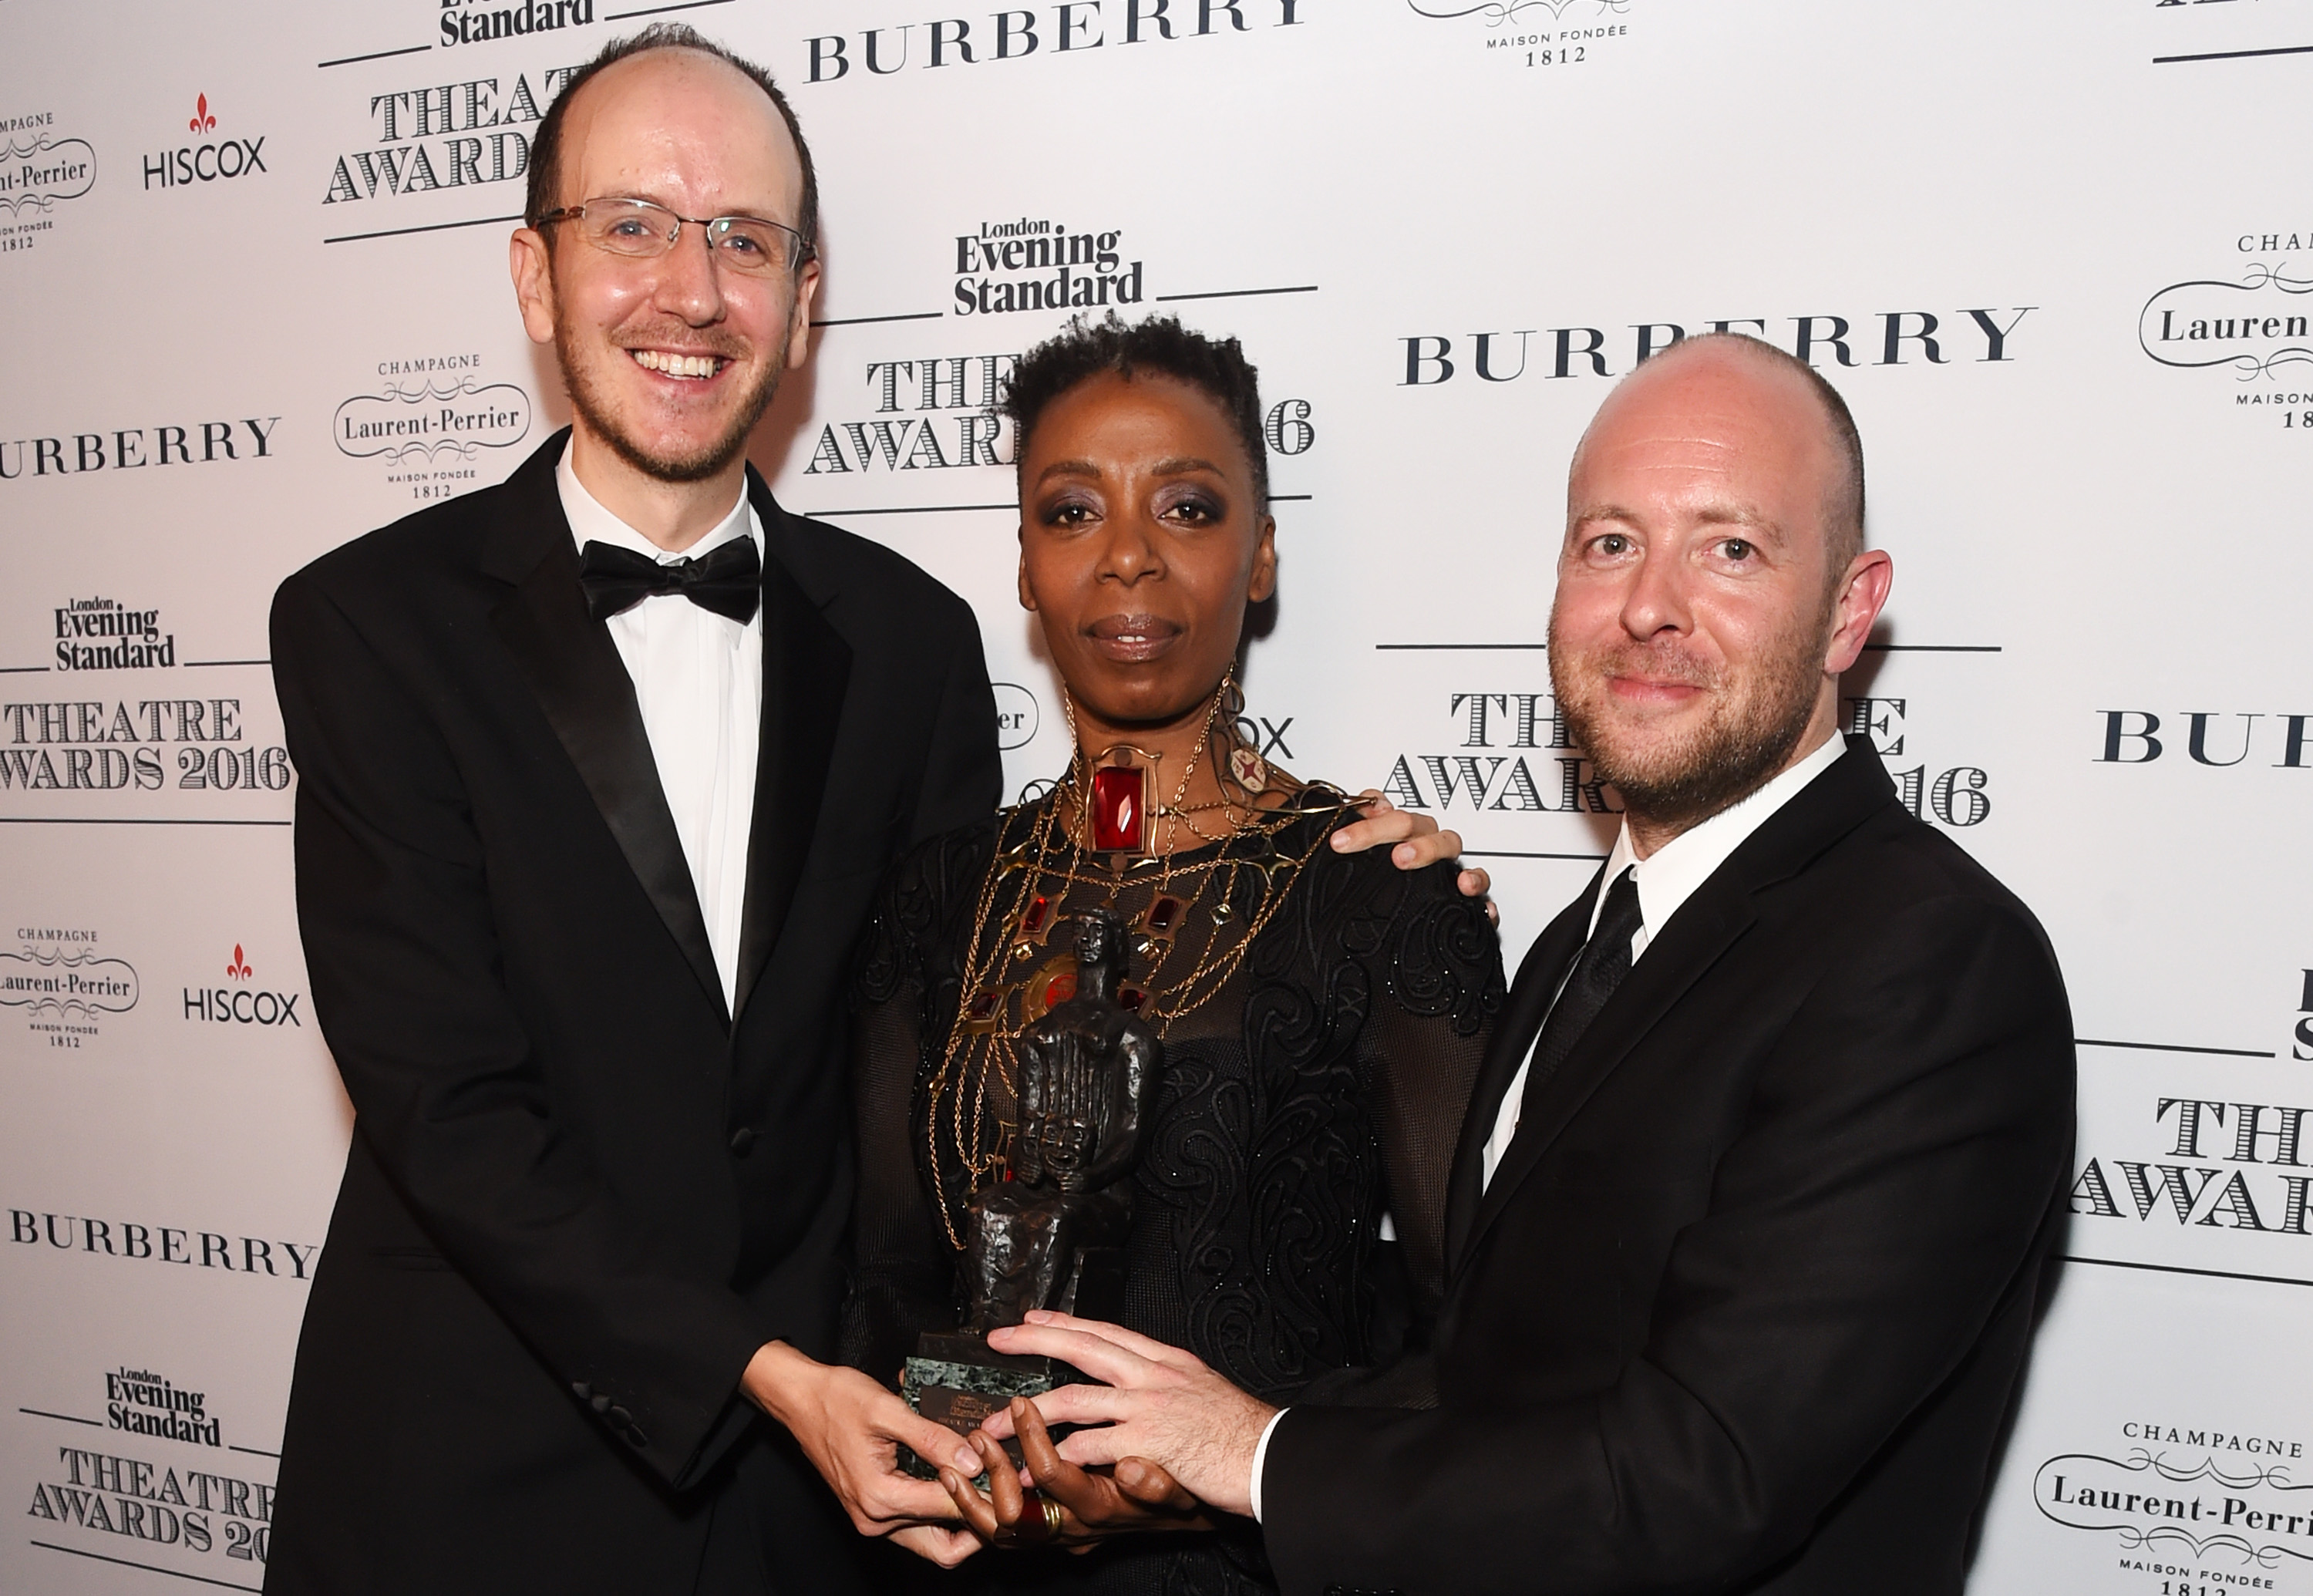 Playwright Jack Thorne, actress Noma Dumezweni and director John Tiffany, accepting the Best Play award with Hiscox for  Harry Potter And The Cursed Child , pose in front of the winners boards at The 62nd London Evening Standard Theatre Awards at The Old Vic Theatre on Nov. 13, 2016 in London.